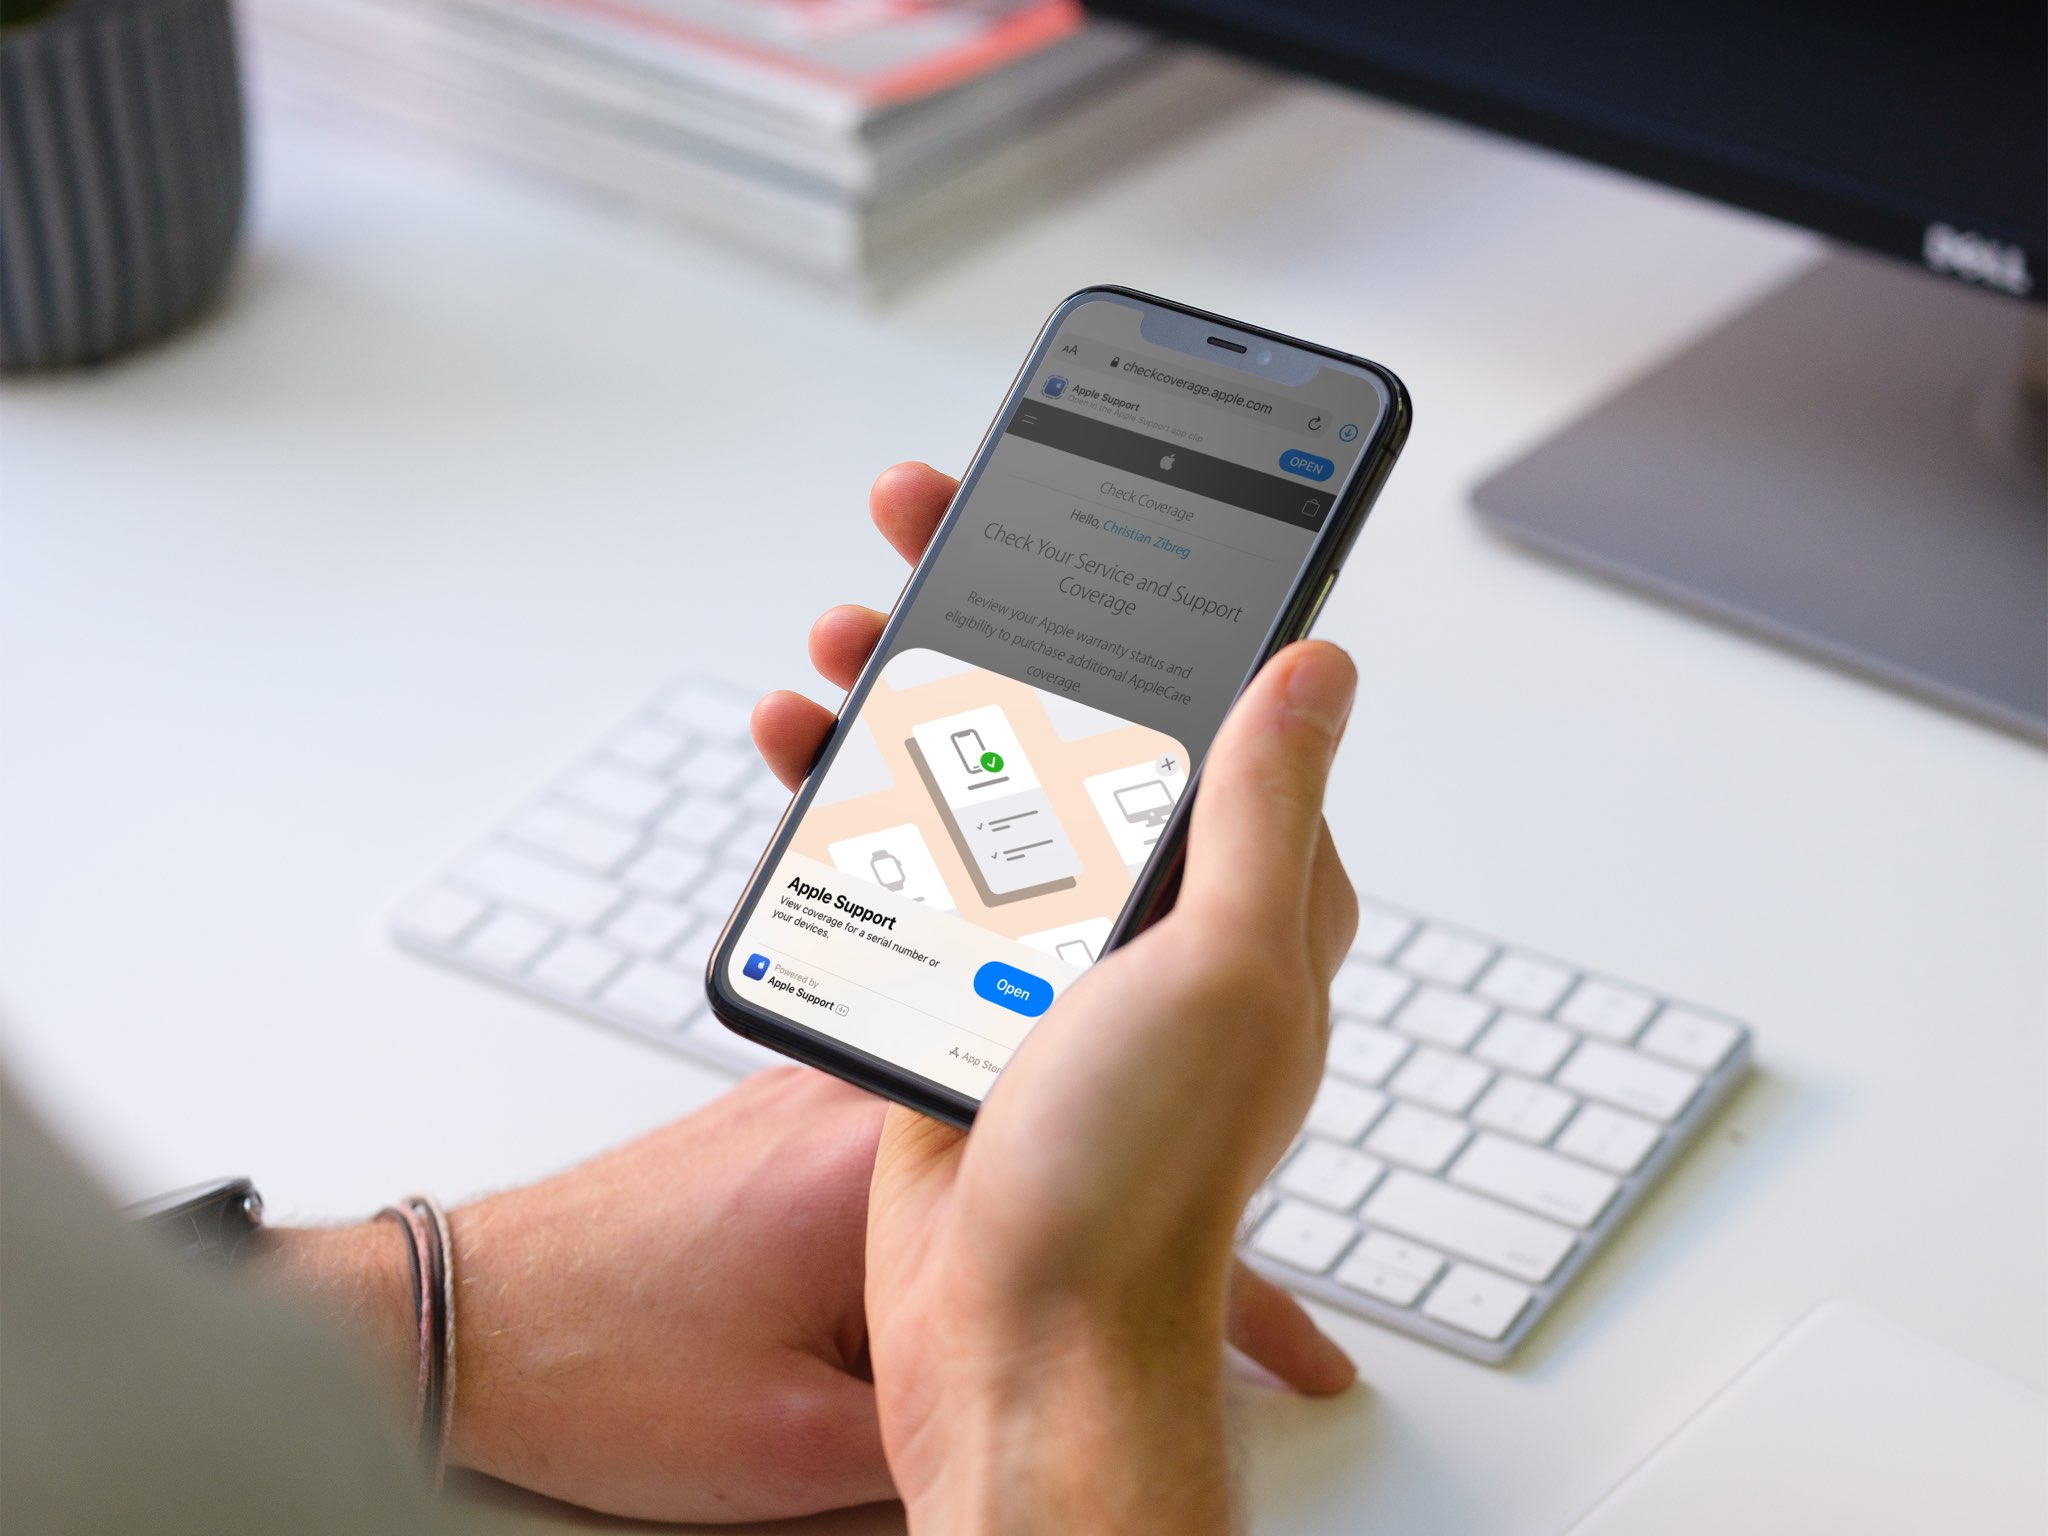 An image showing a person sitting at their desk, holding an iPhone in their hand with the Apple Support App Clip displayed on the screen